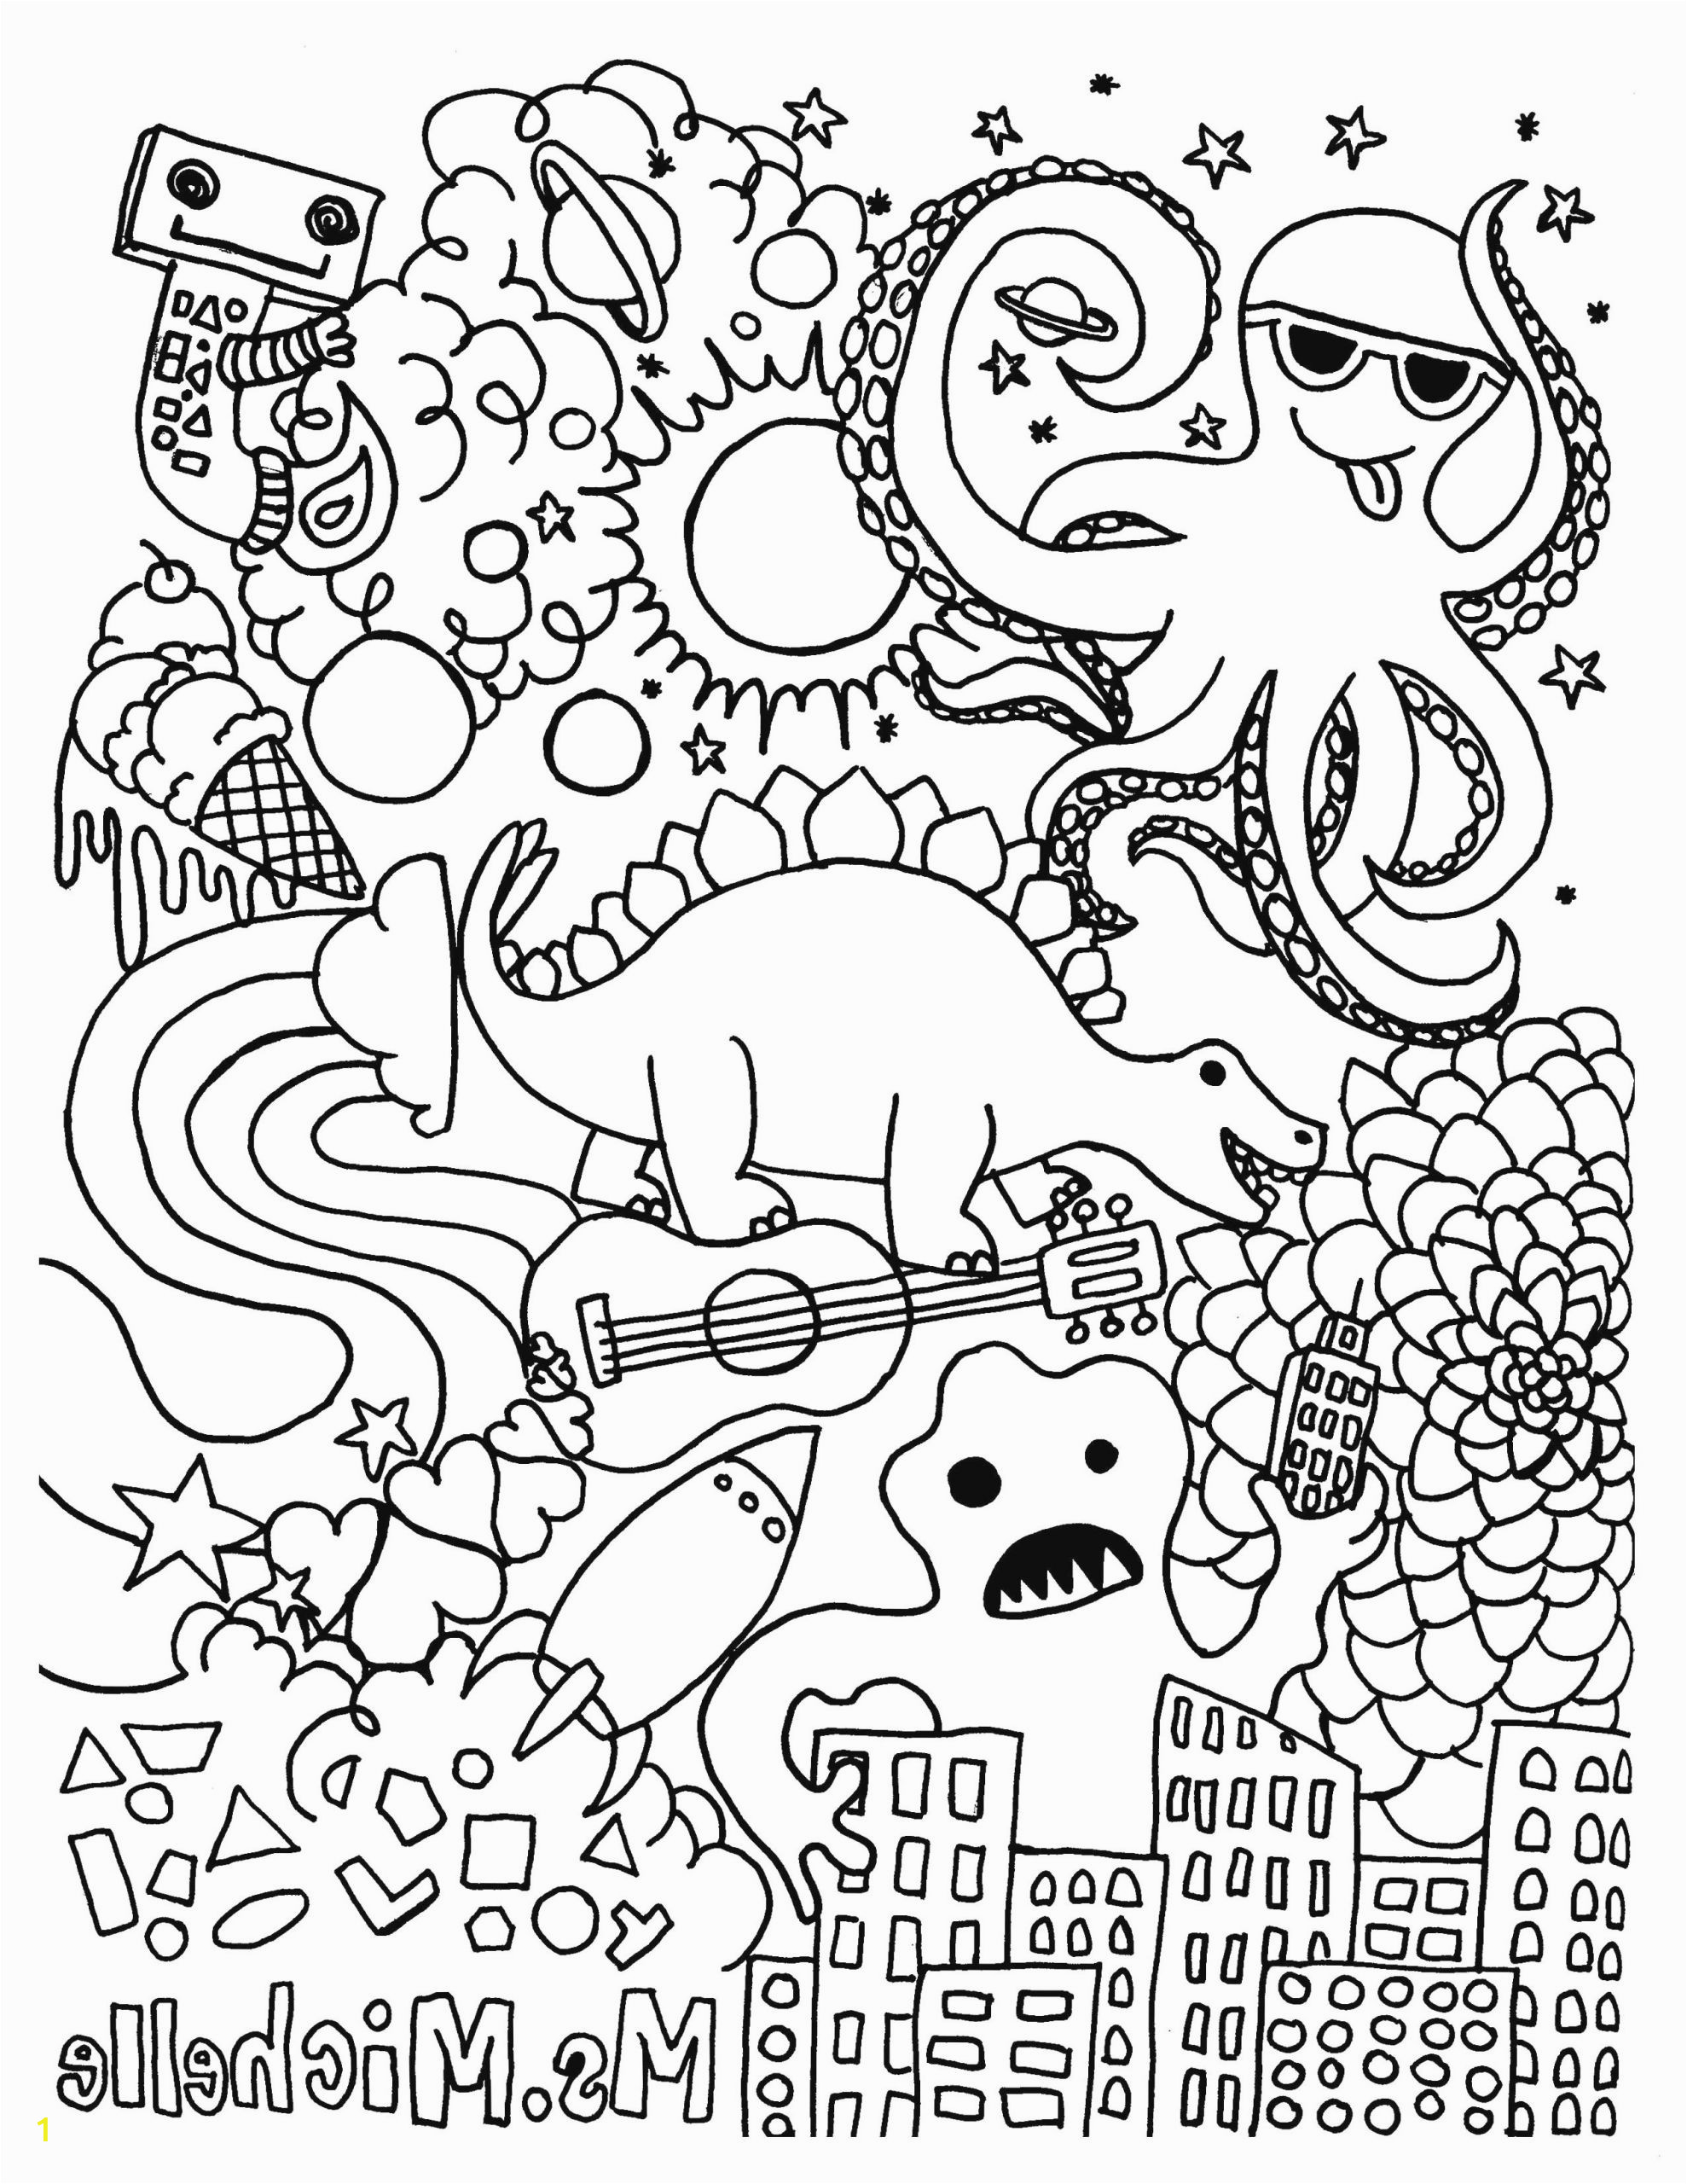 free printable easy coloring pages best of 20 awesome s coloring picture frogs of free printable easy coloring pages scaled